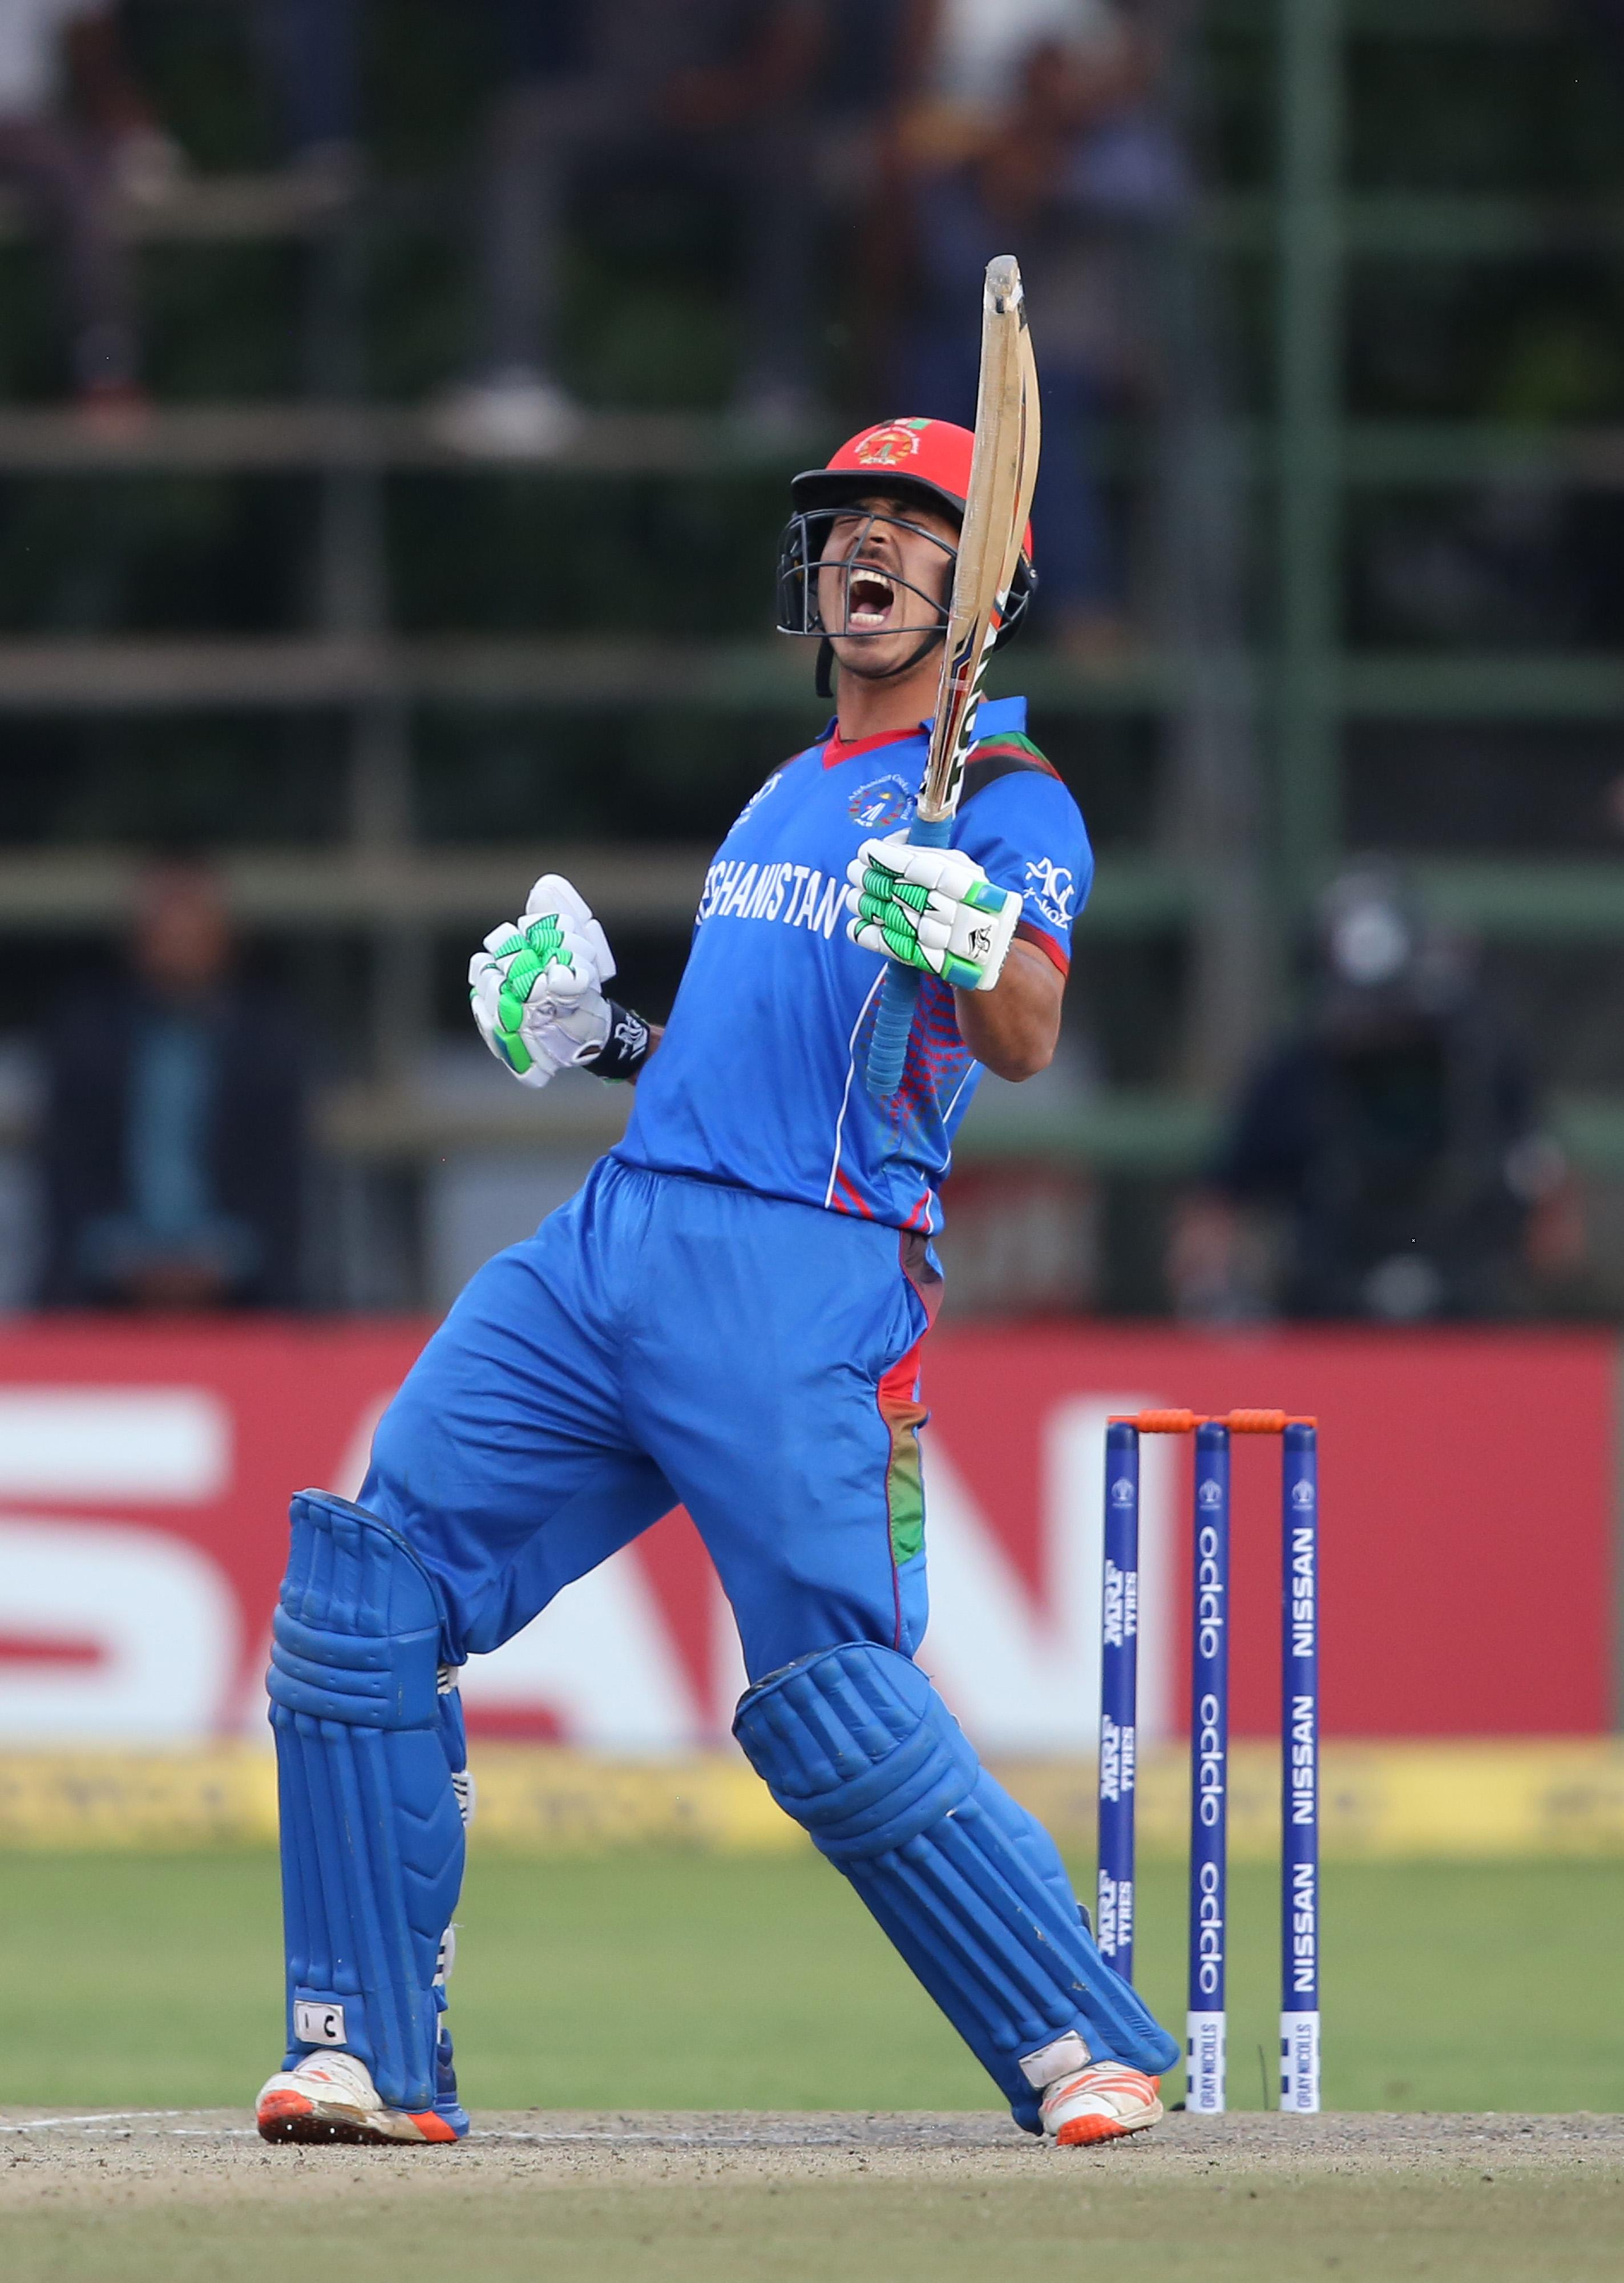 Afghanistan chased down Ireland's 209 in the final over of a thrilling match